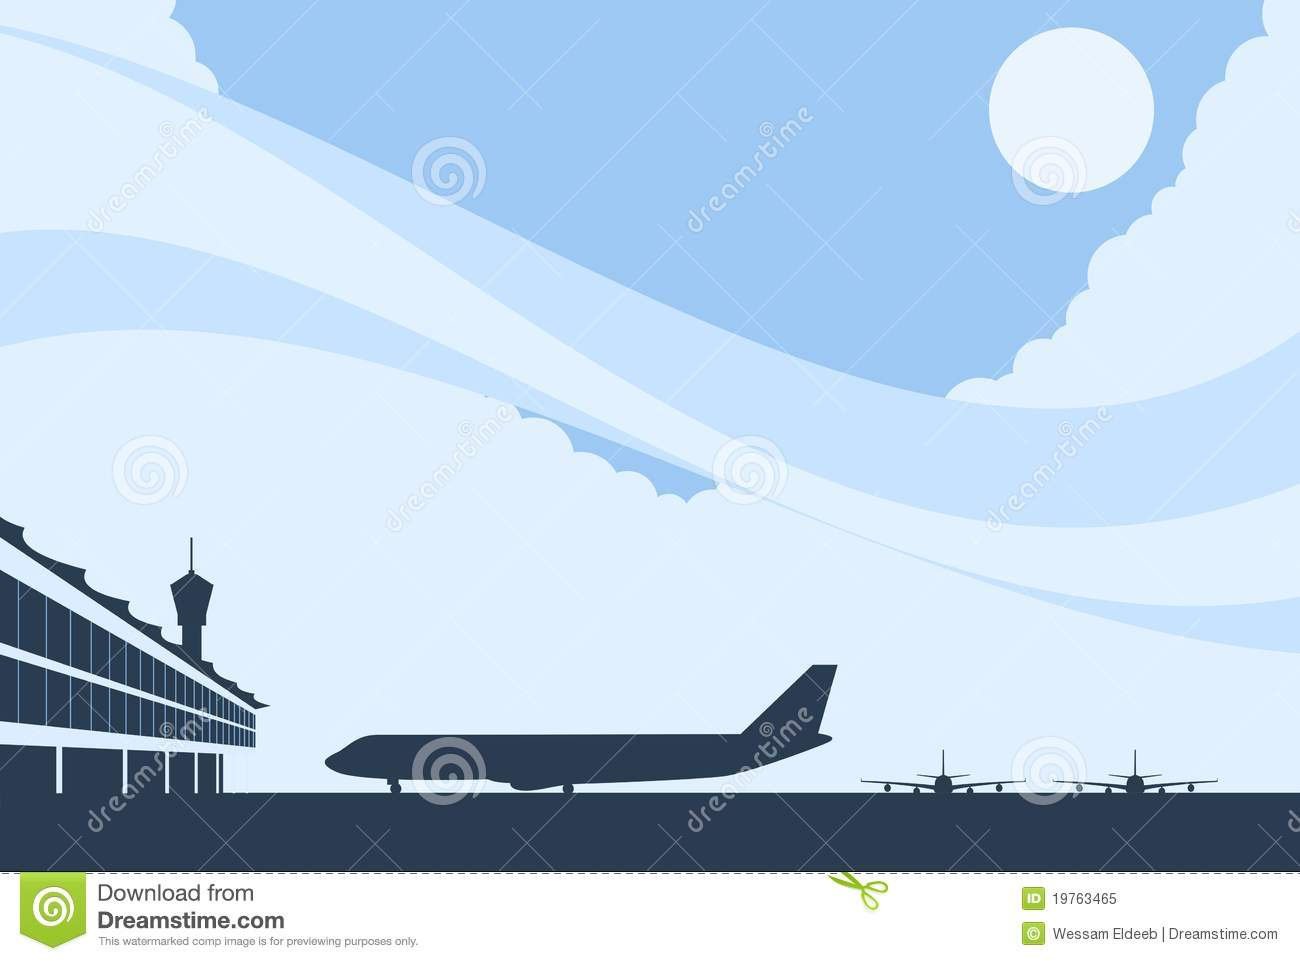 Airport Background Royalty Free Stock Photo - Image: 19763465